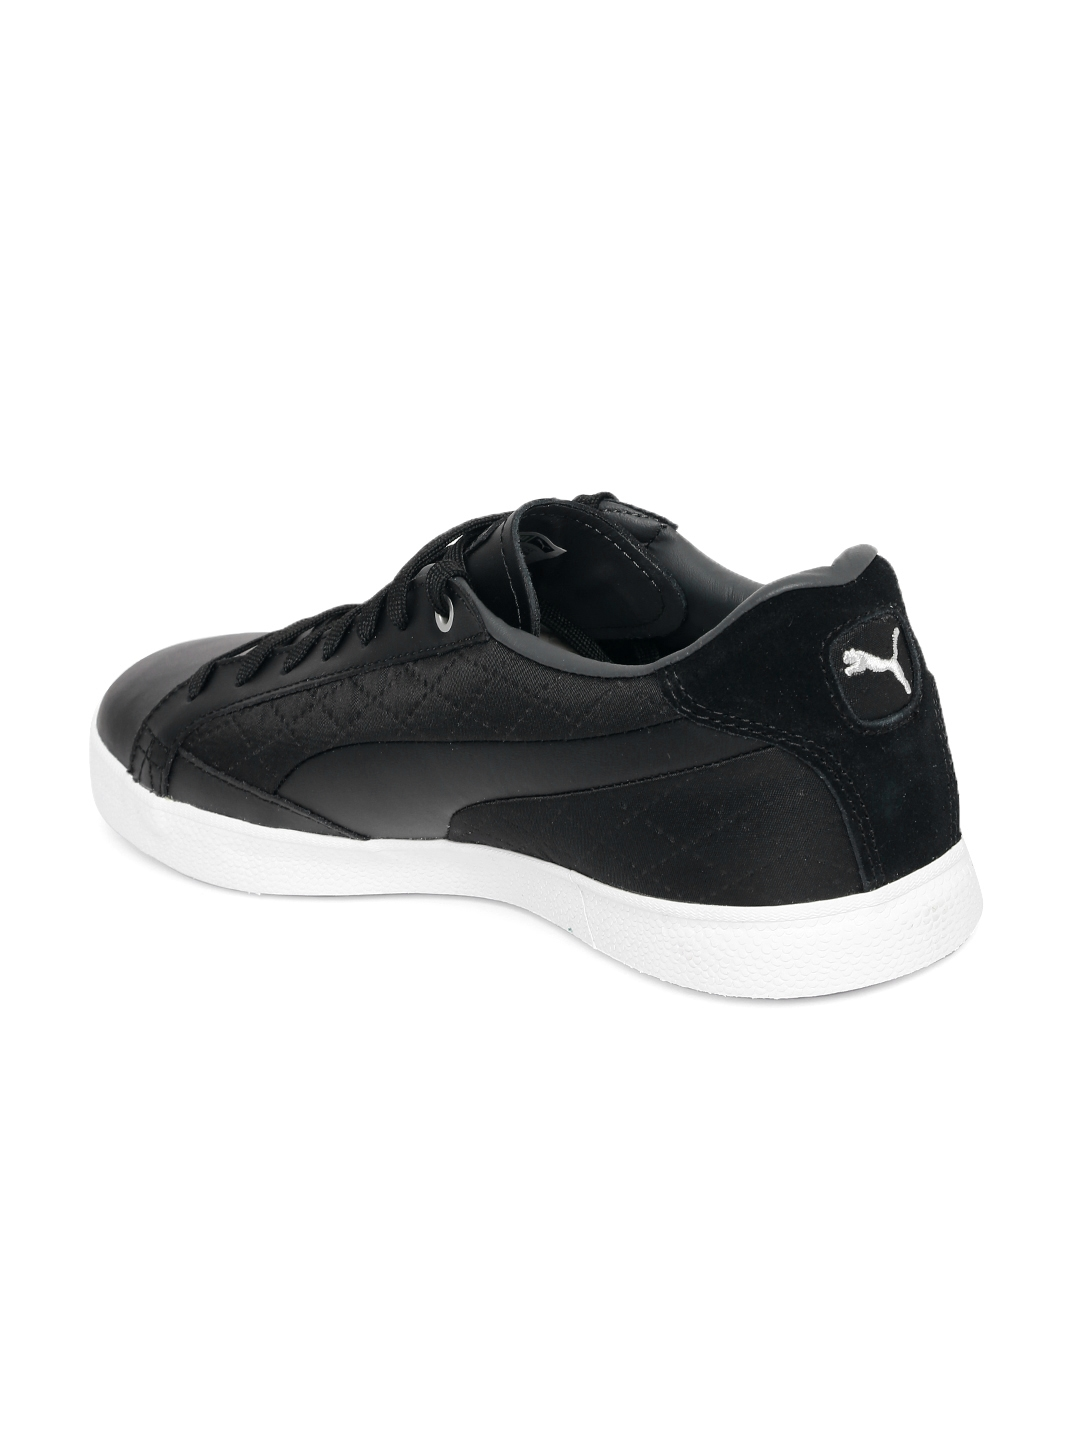 fc548124ae0 Buy Puma Men Black Match Vulc 2 Quilted Sneakers - Casual Shoes for ...